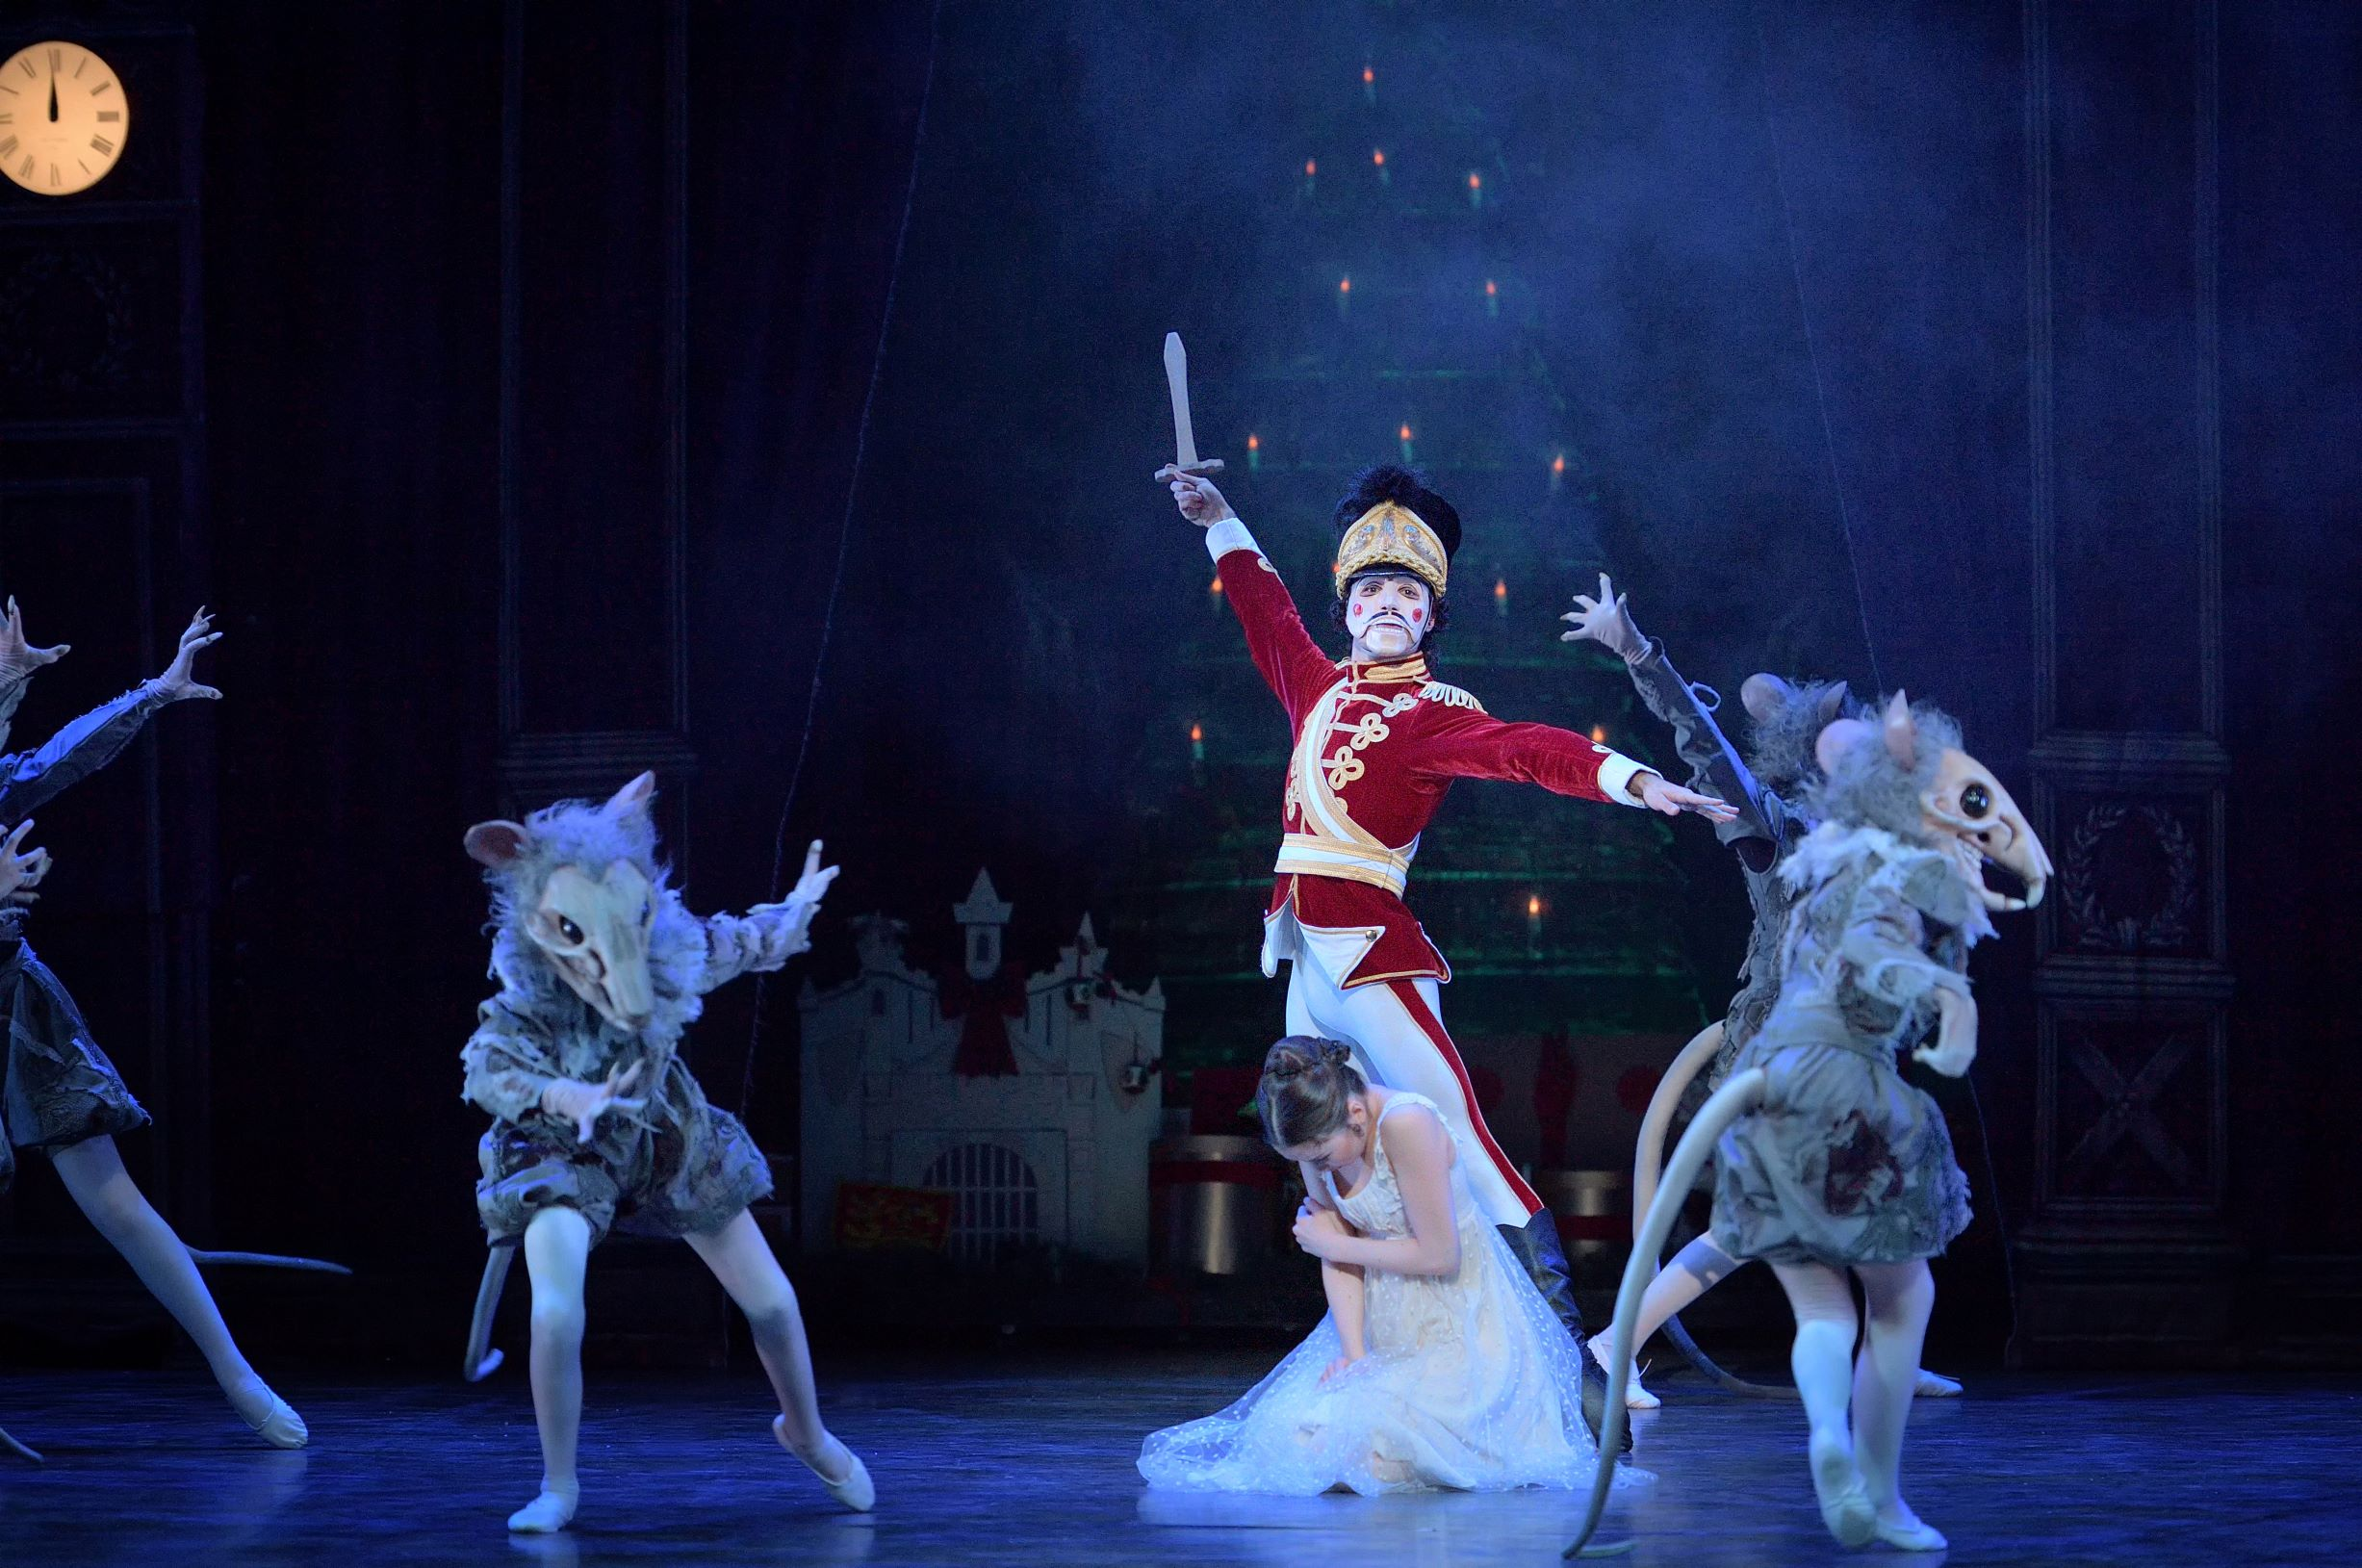 Clara's enchanted Nutcracker doll comes to life and battles the Mouse King